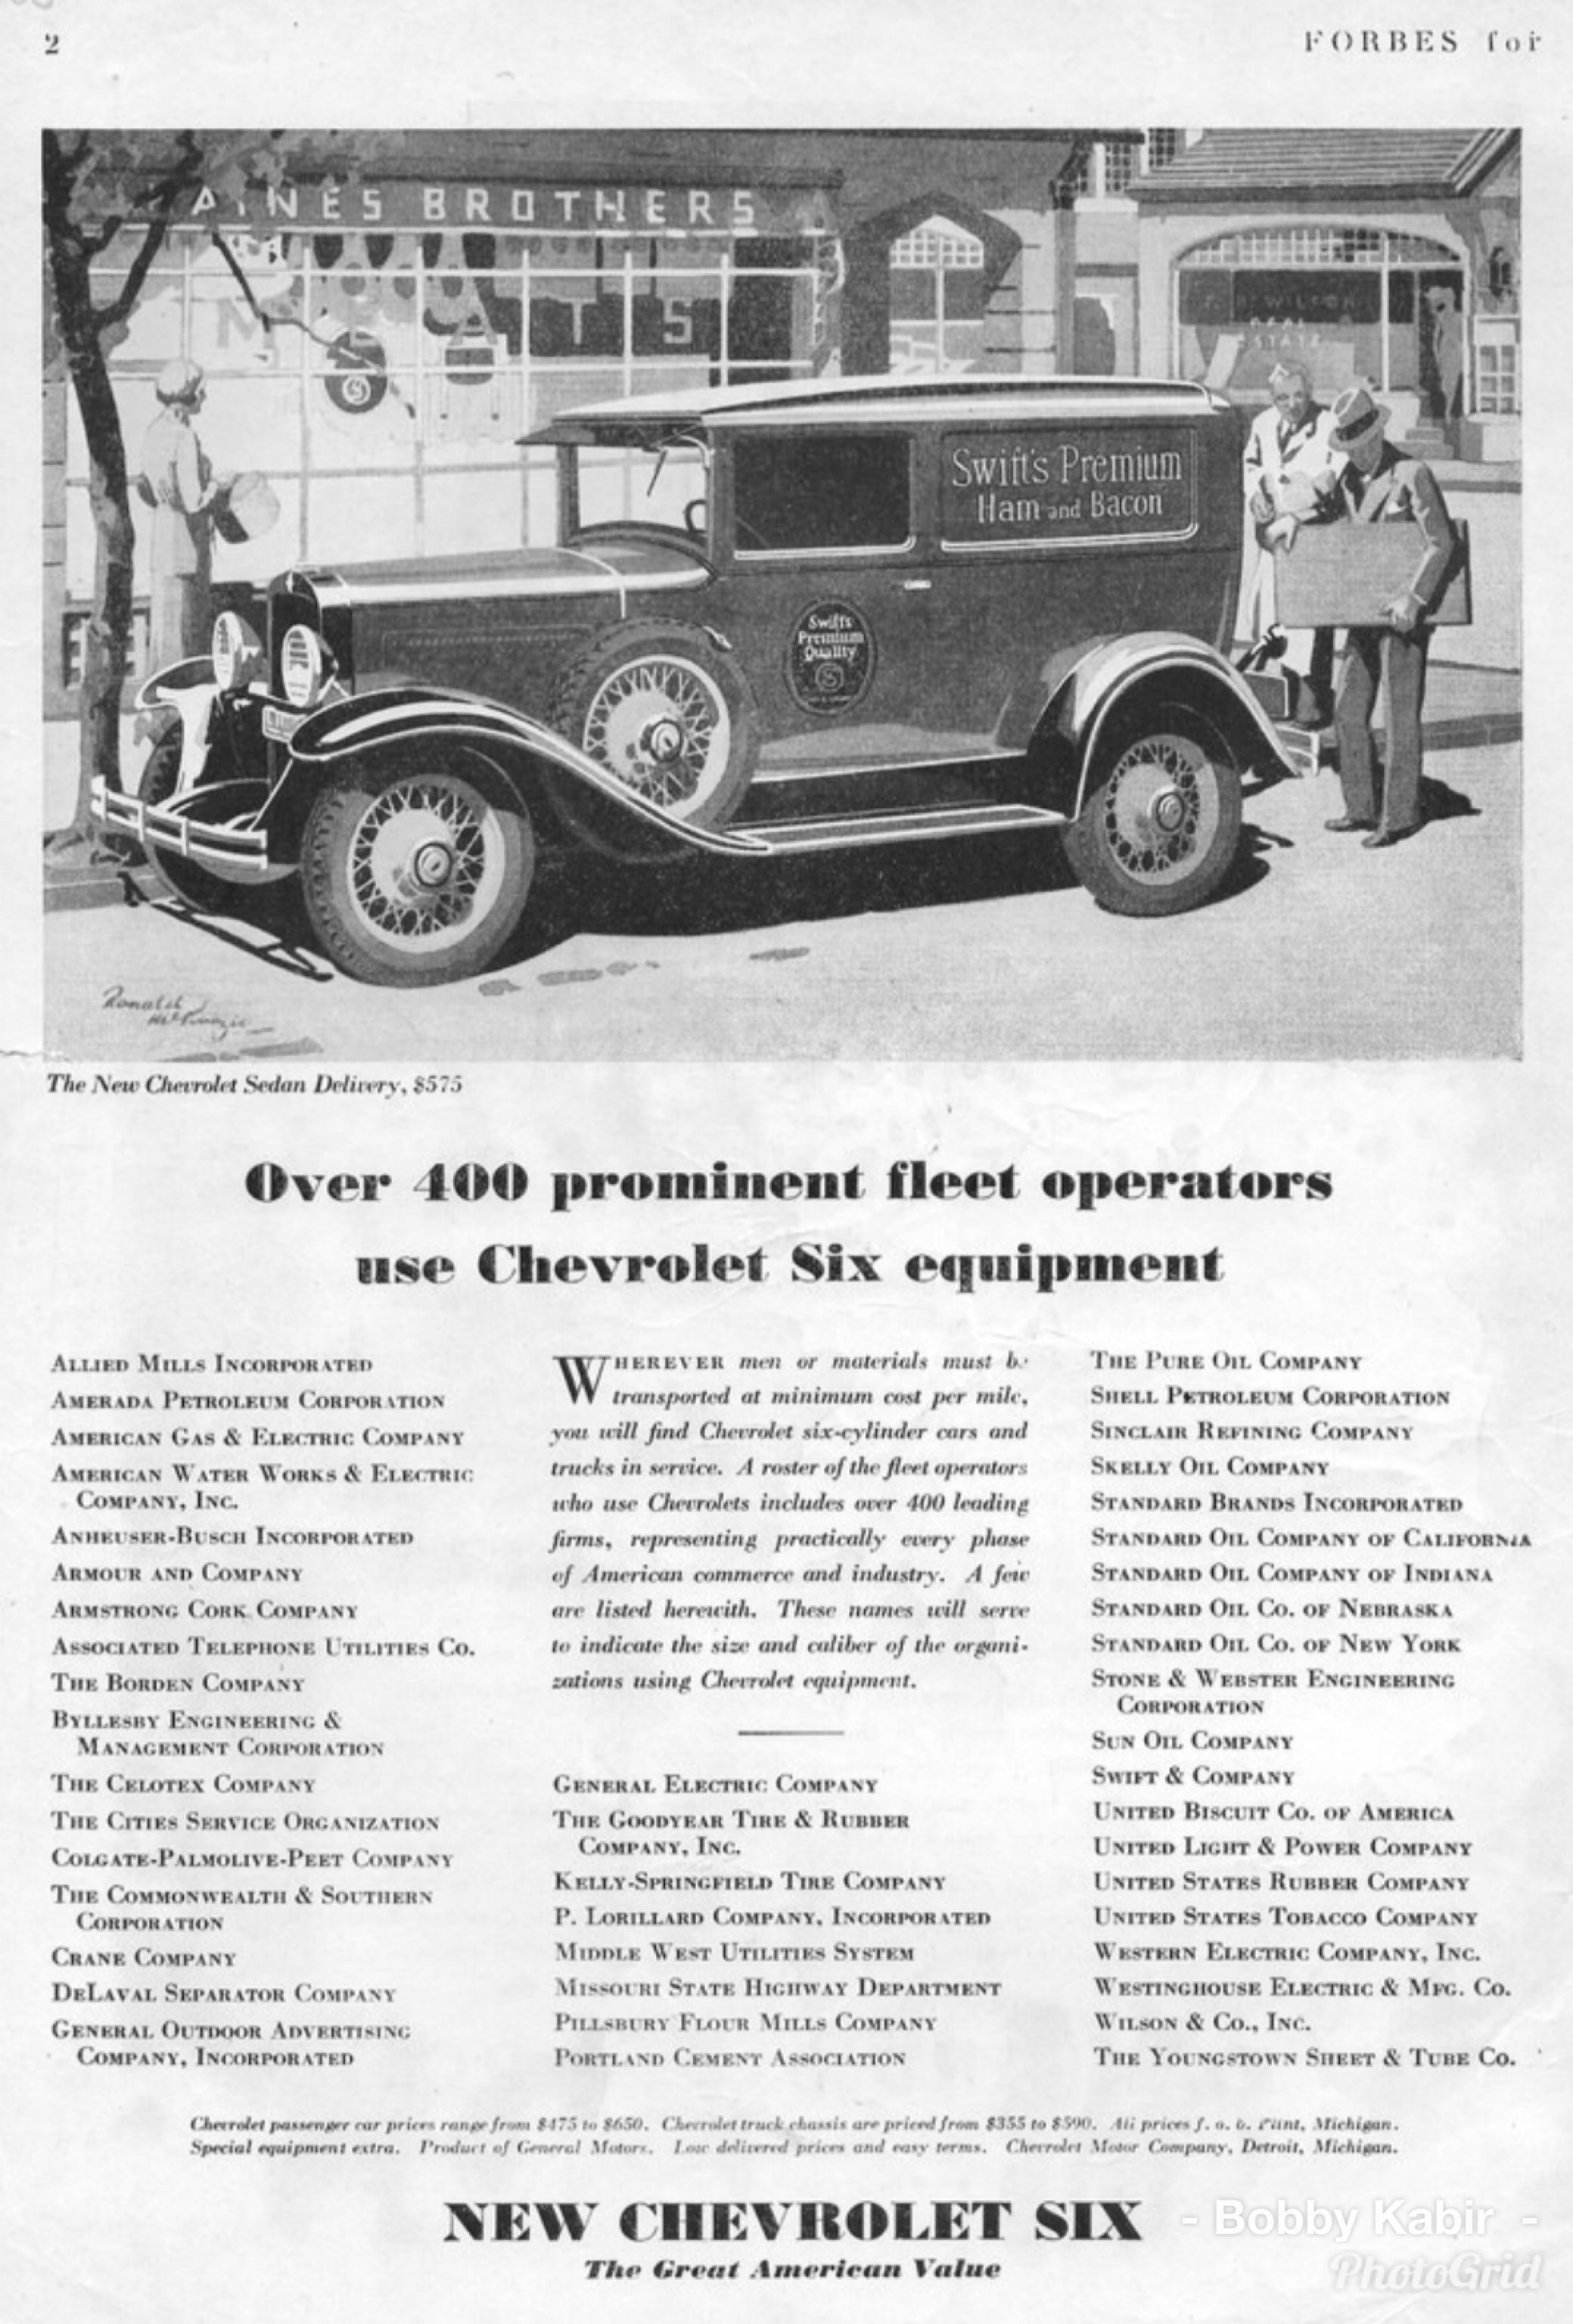 Pin by Daniel Jacobs on Volvo PV444 and PV544 | Pinterest | Volvo